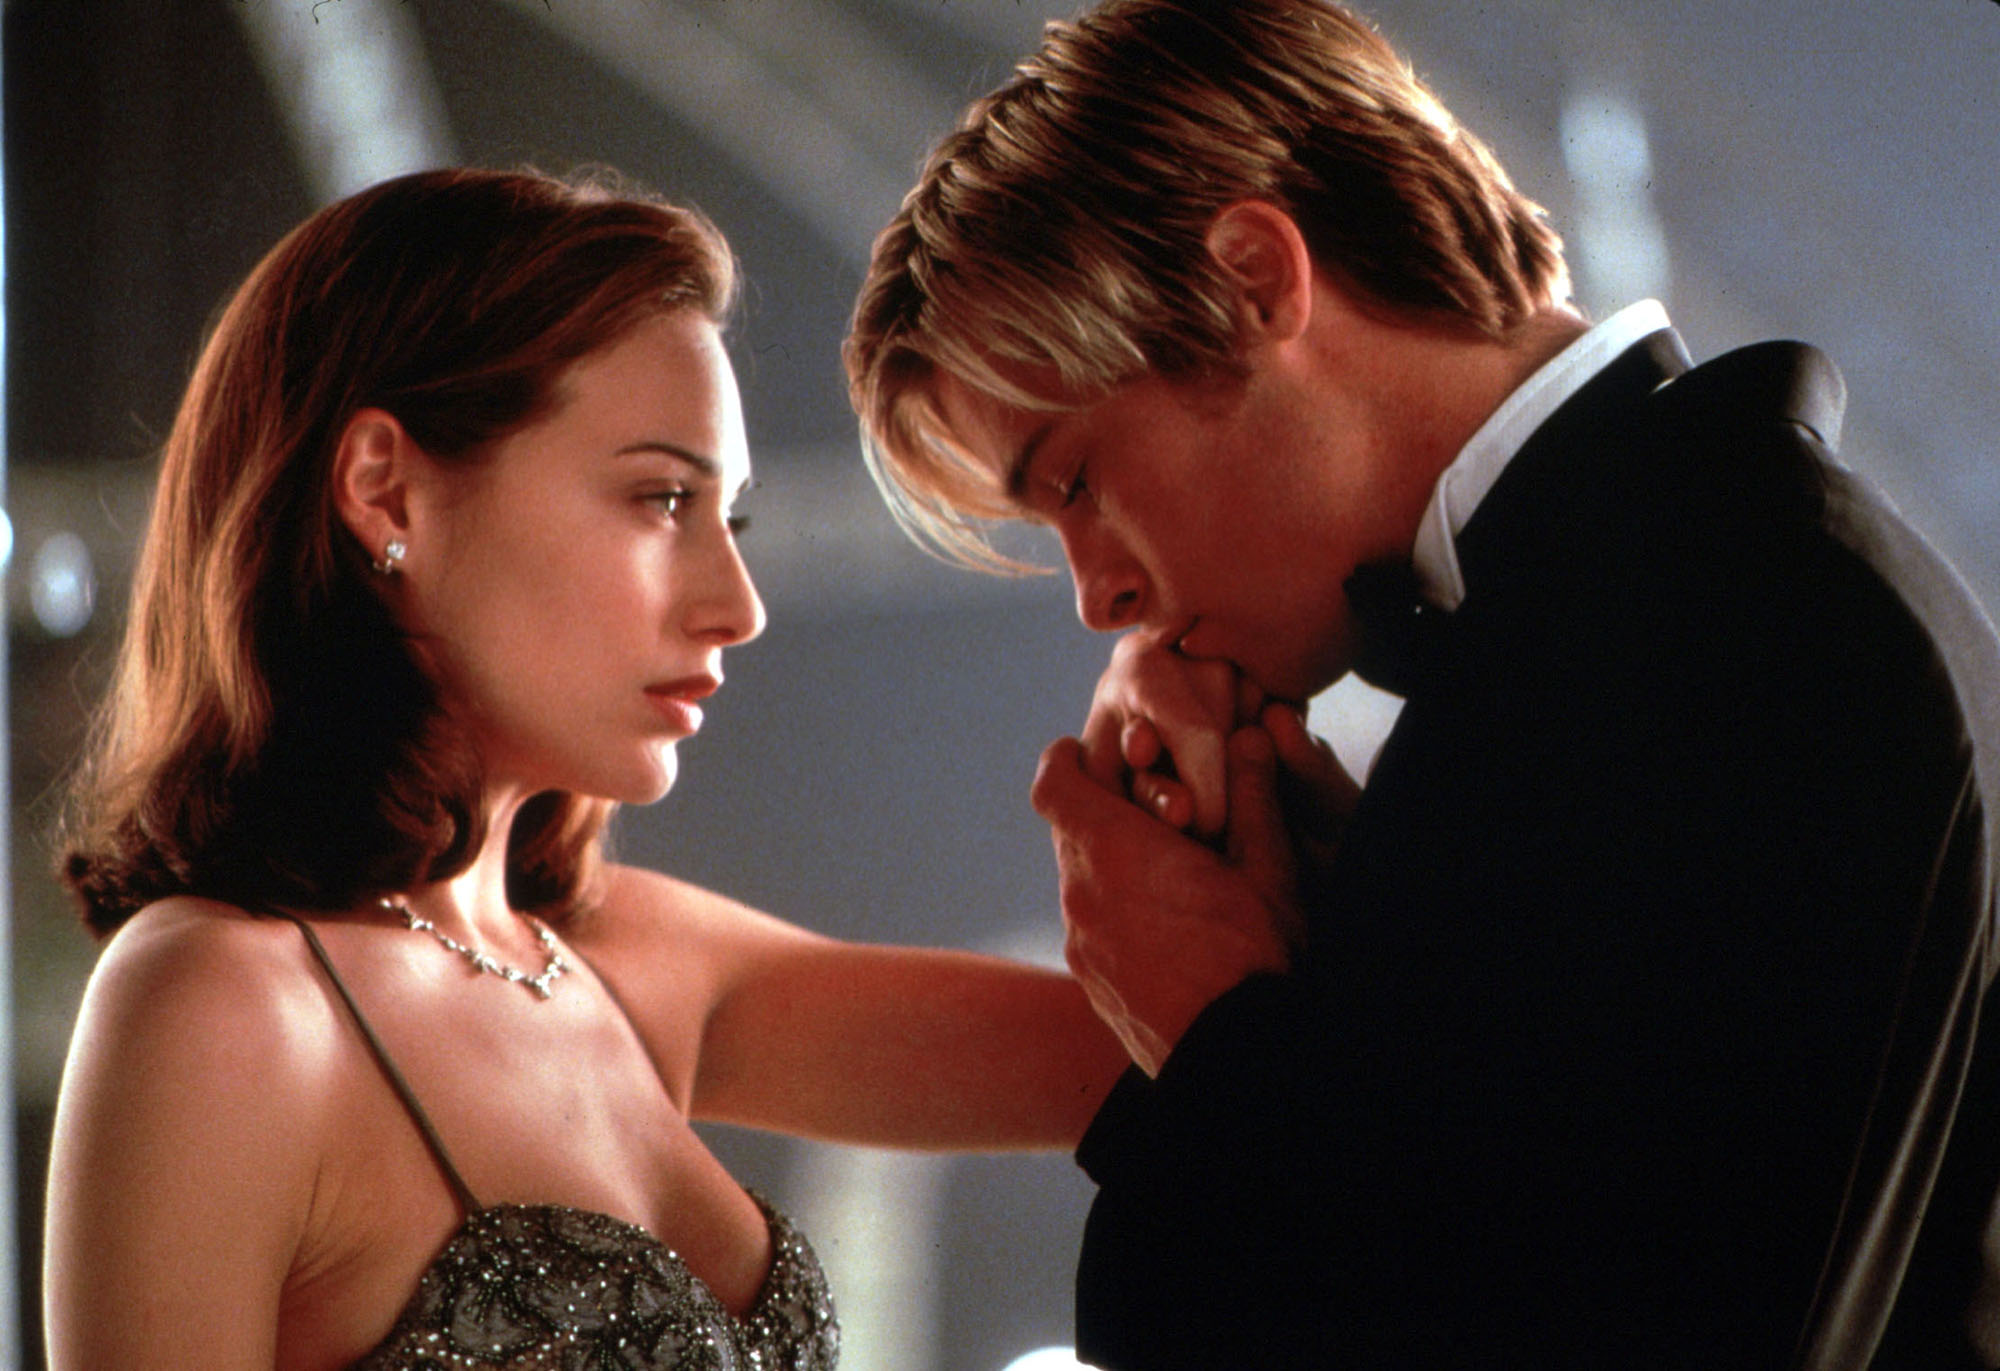 Susan Parrish (Claire Forlani Shares An Intimate Moment With A Mysterious Presence Known Only As Jo